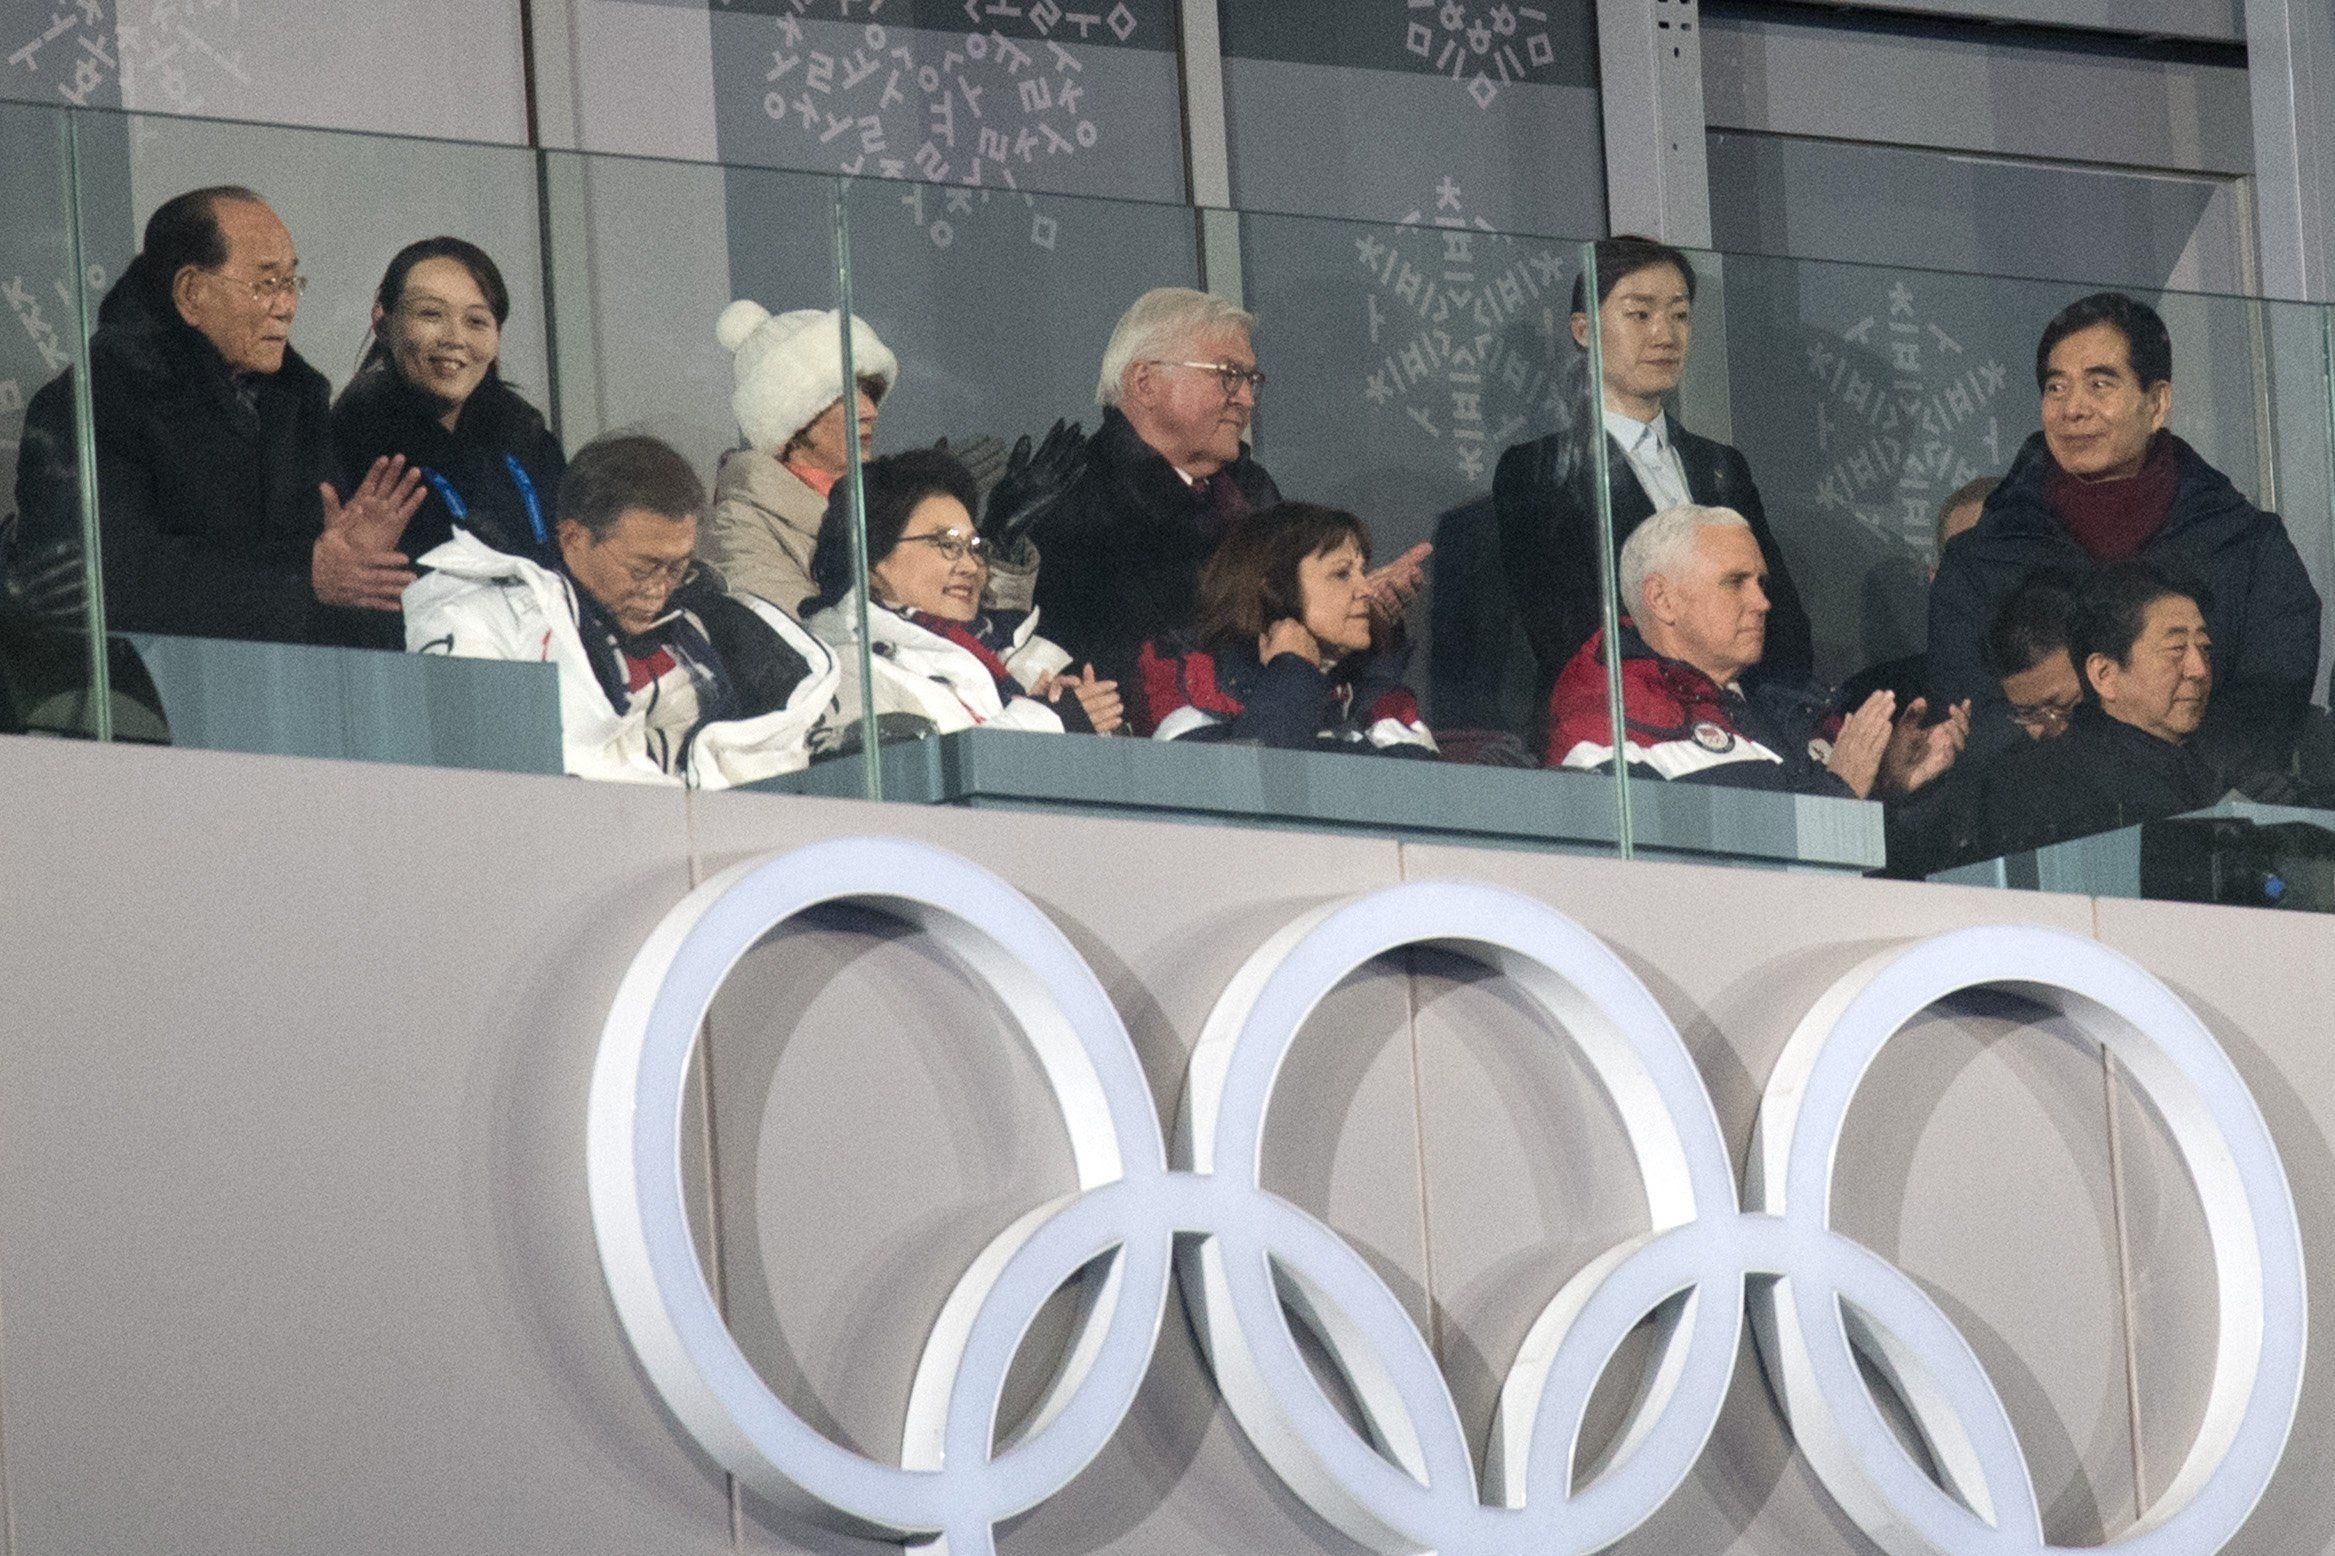 Nuclear Tensions Run High at Winter Olympics Despite Koreas' Show of Unity